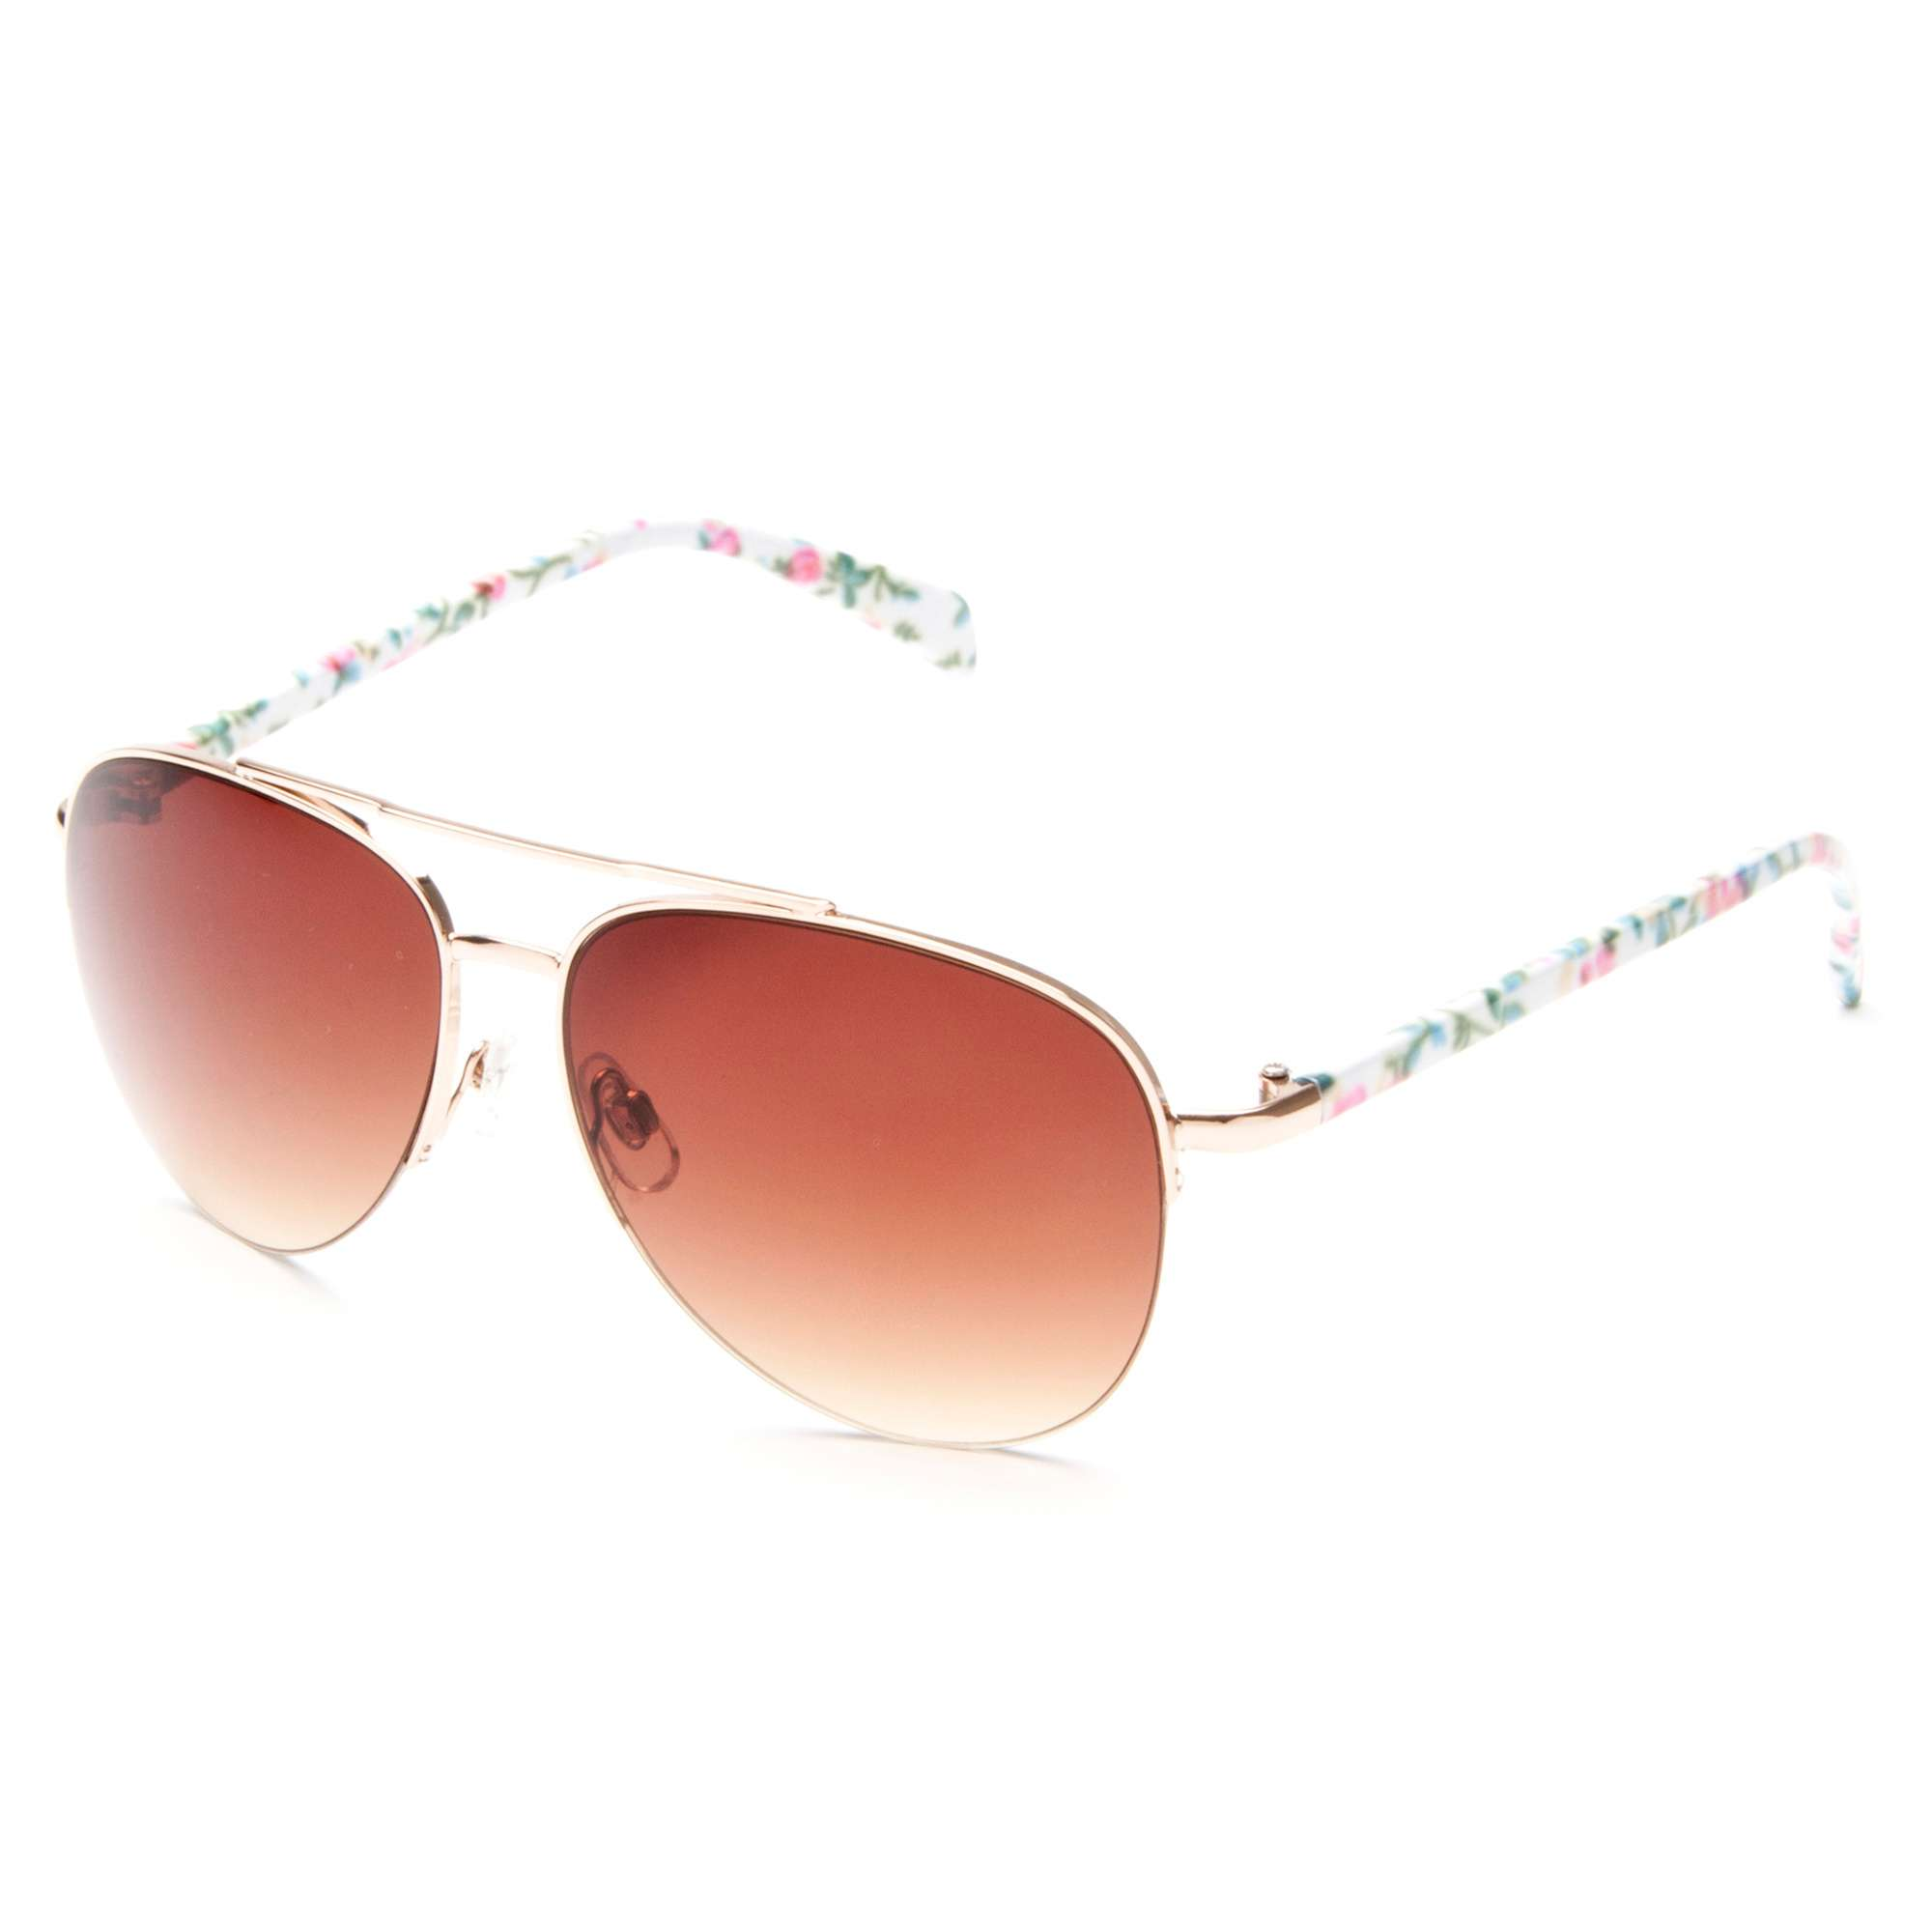 PETER STORM Women's Aviator Print Sunglasses